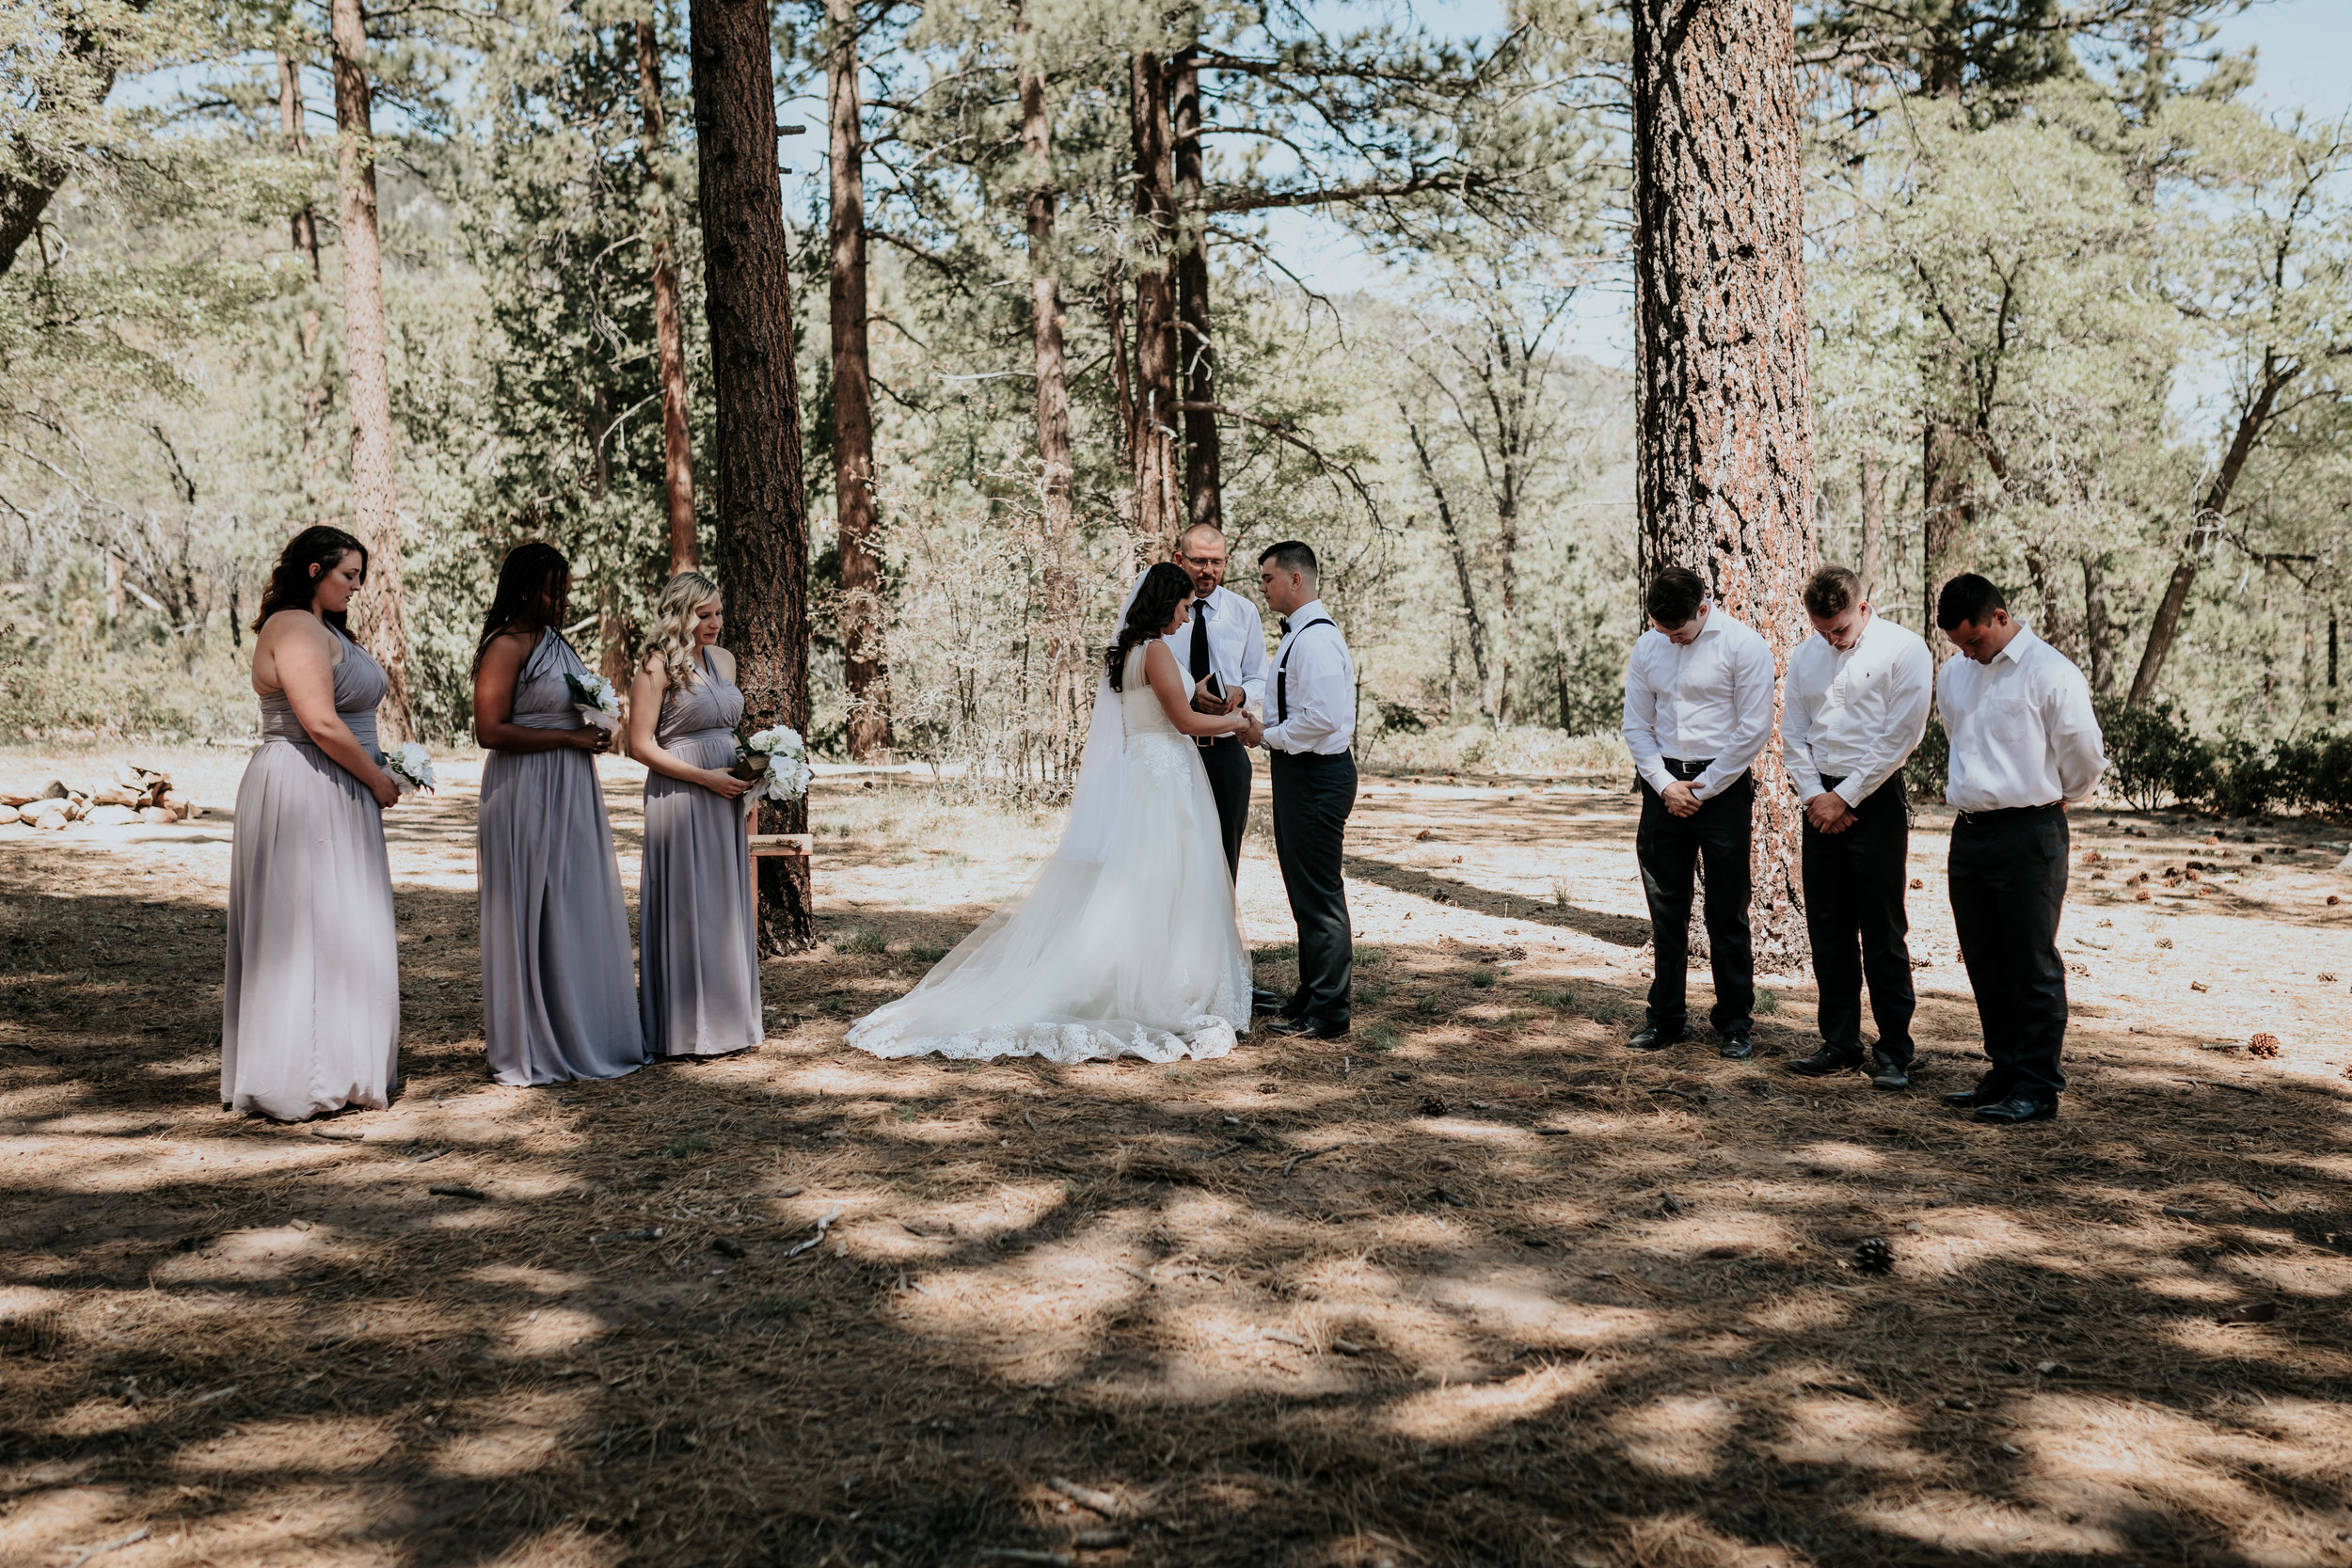 forest-wedding-big-bear-california-wedding-photographer (27).jpg